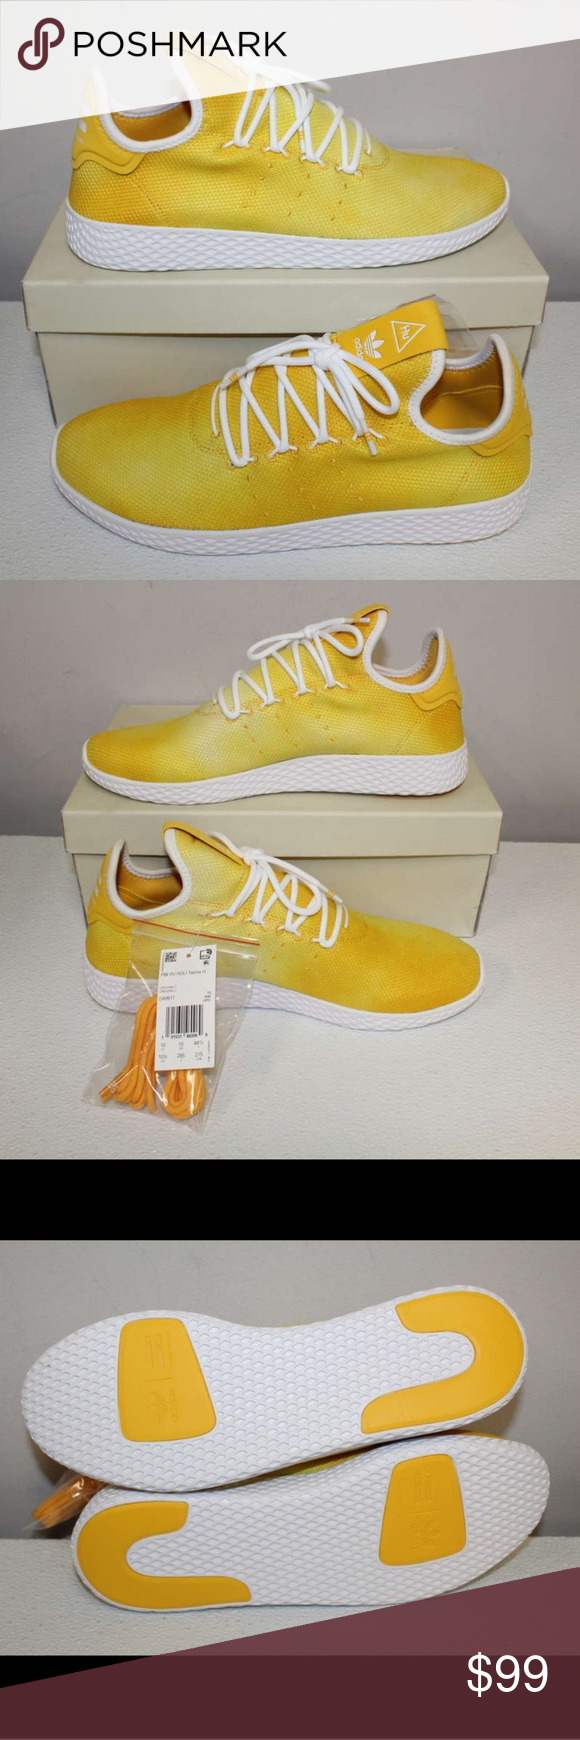 New Men S Adidas Pharrell Tennis Hu Yellow Shoes Yellow Shoes Pharrell Adidas Pharrell Williams